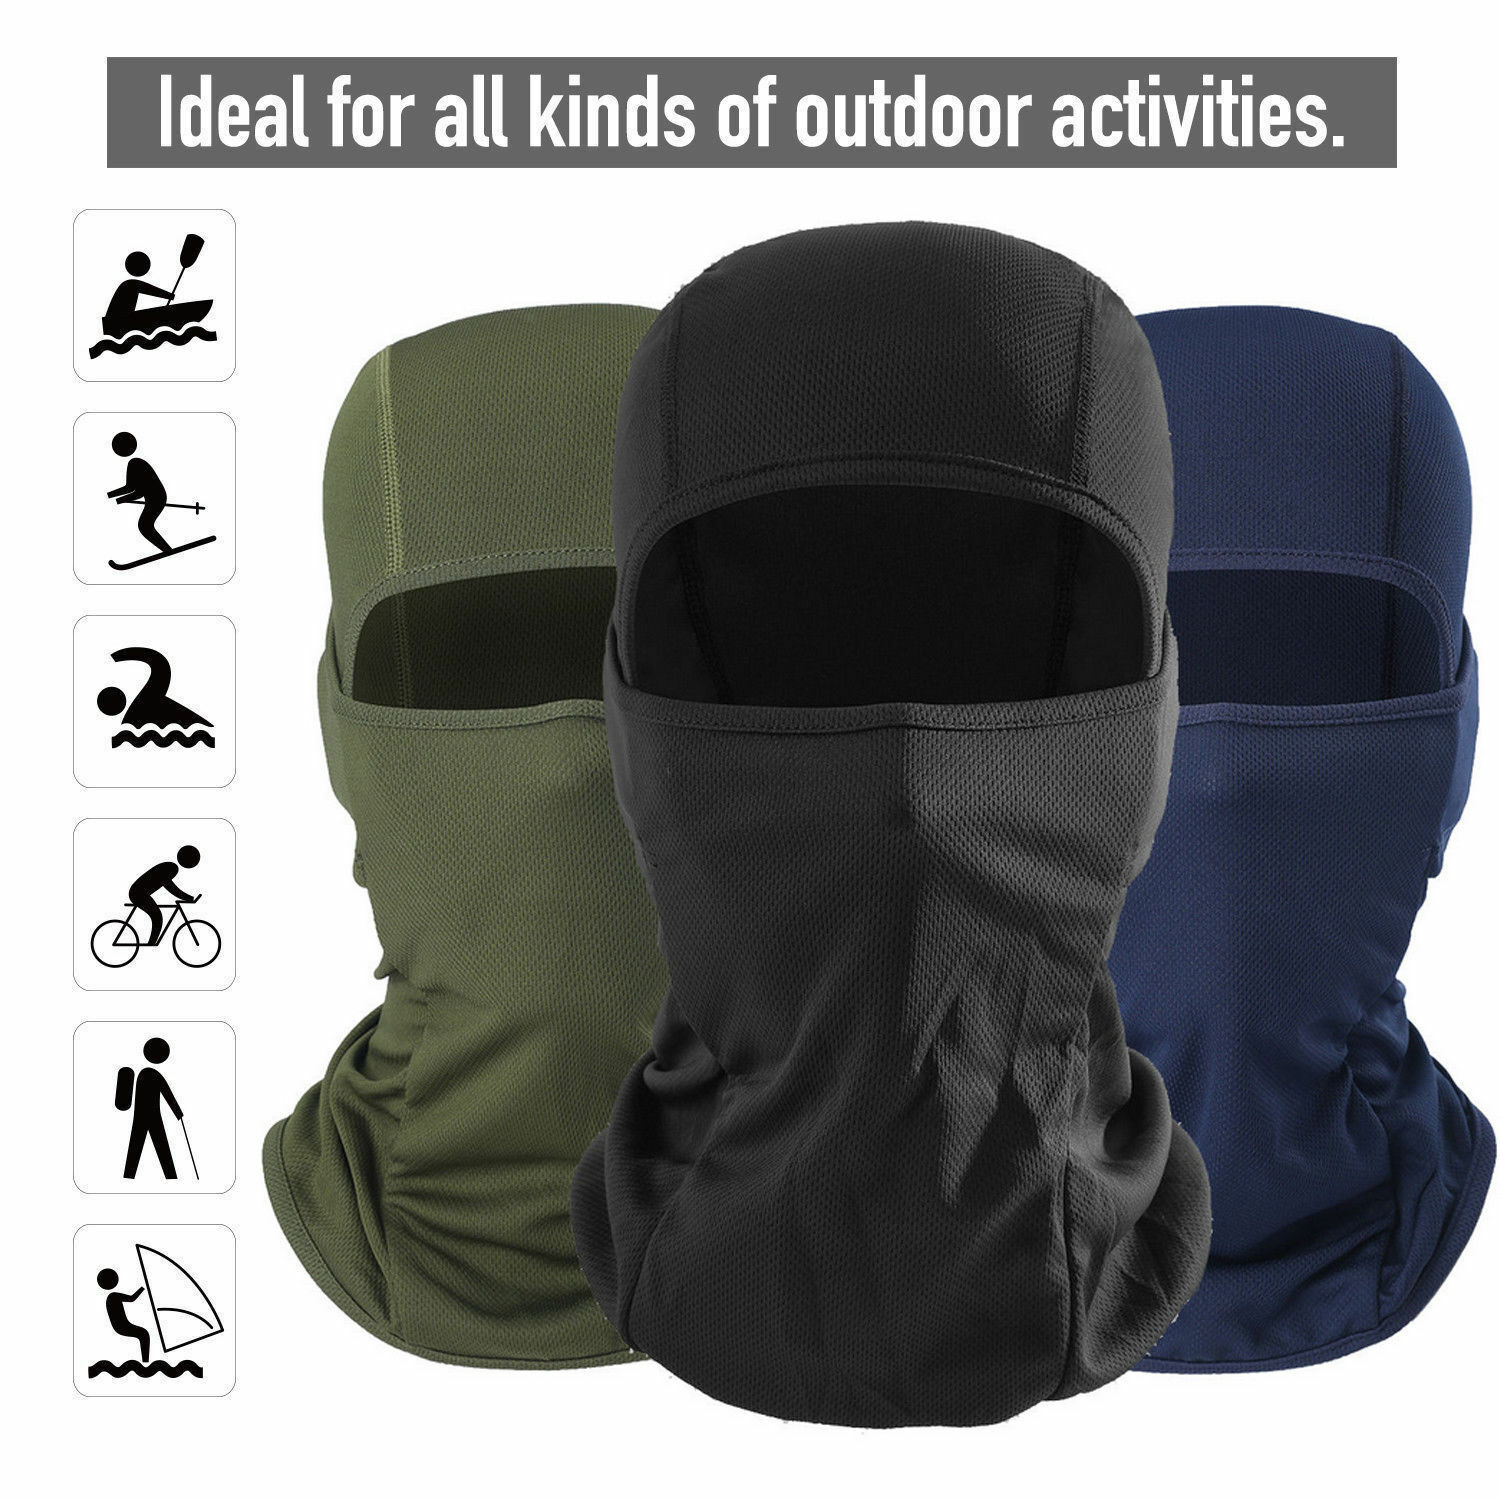 Balaclava Tactical Face Mask UV Protection for Men Women Hood Cycling Running US Clothing, Shoes & Accessories